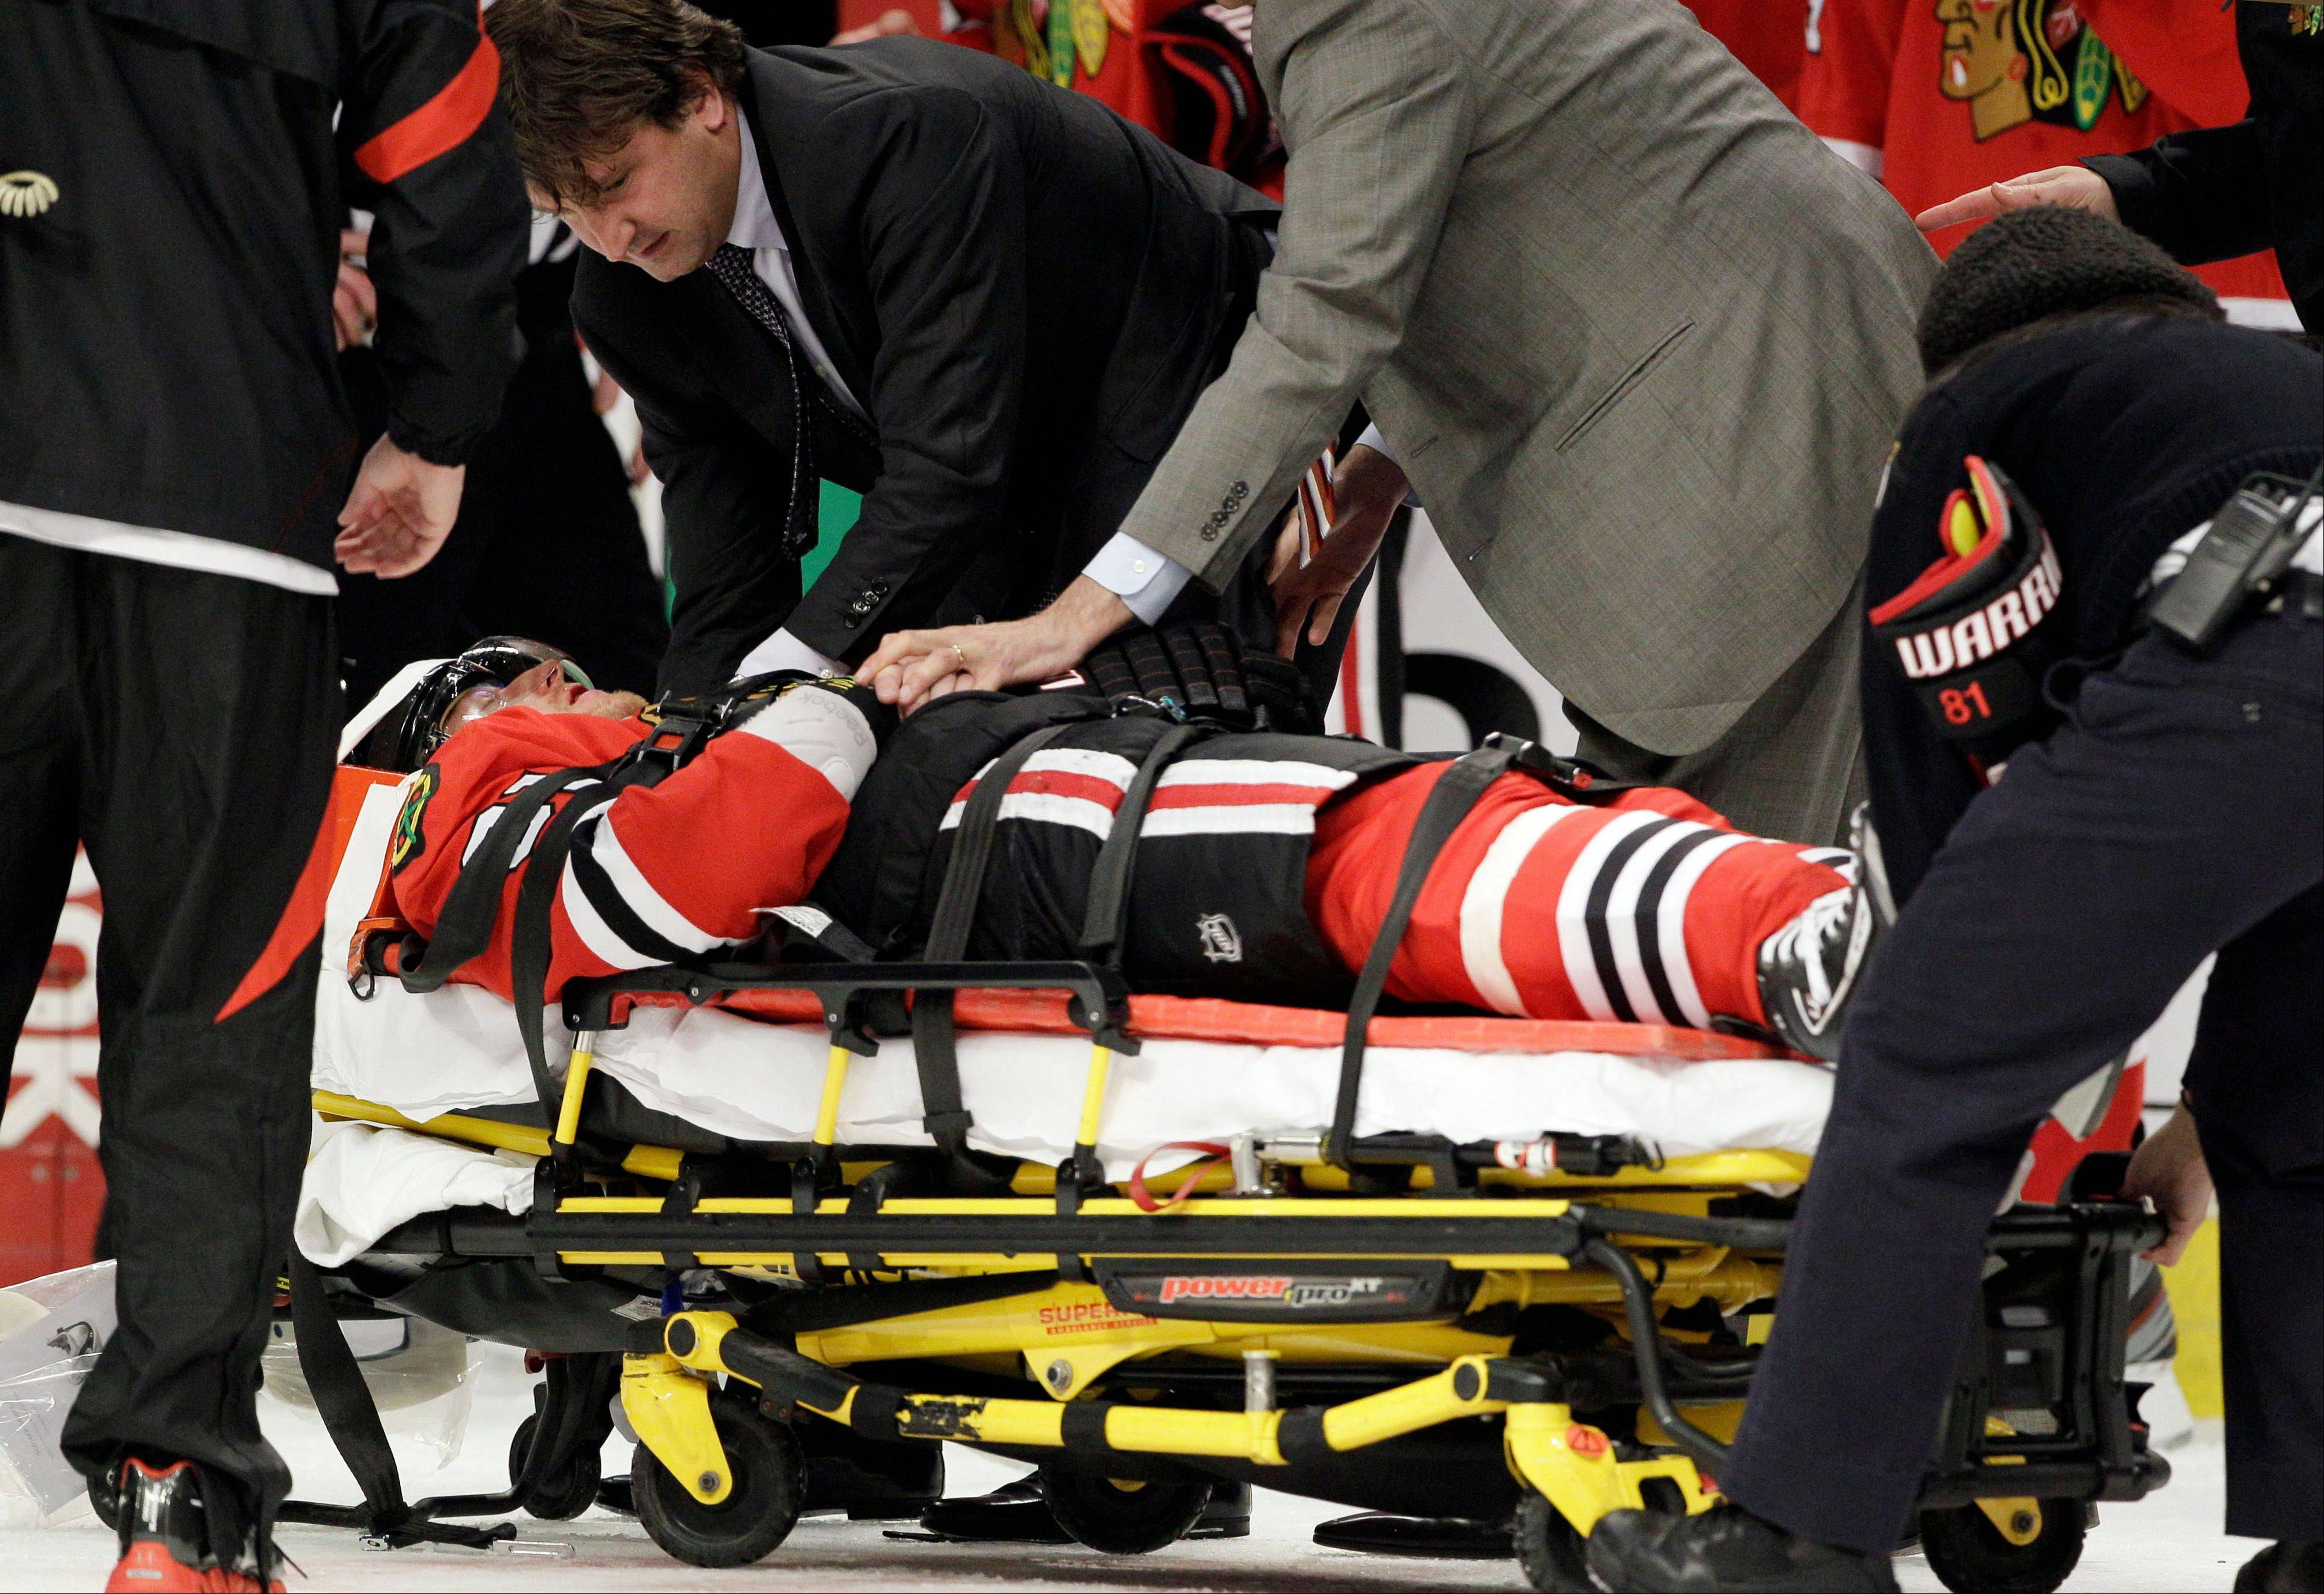 The Hawks' Marian Hossa is taken off the ice on a stretcher after the hit by the Coyotes' Raffi Torres.